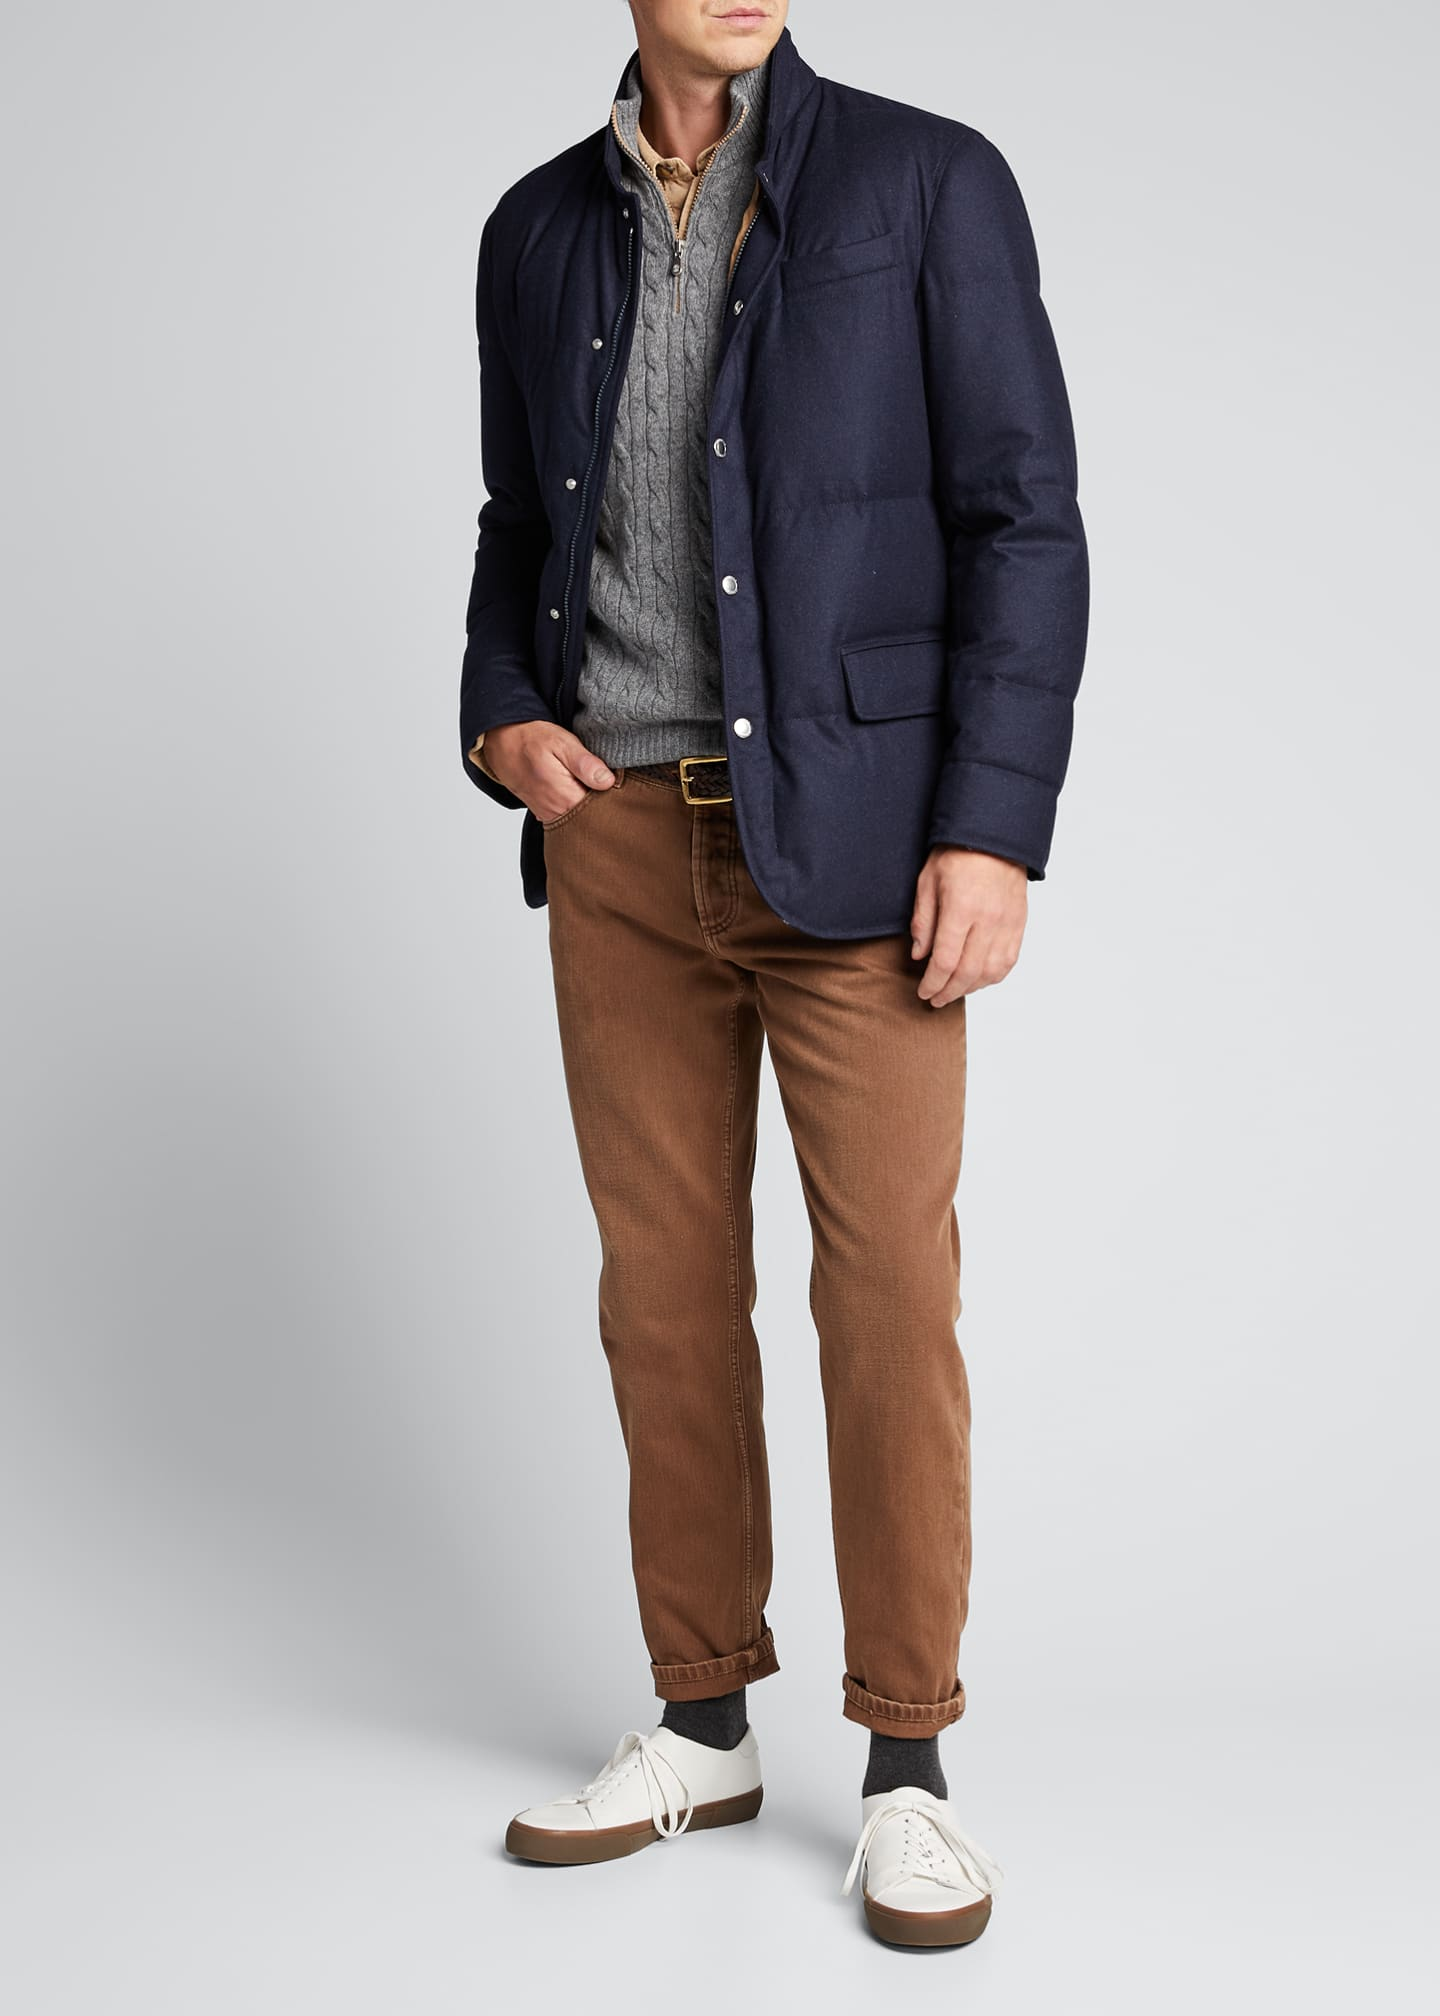 Brunello Cucinelli Men's Down-Filled Snap-Front Jacket